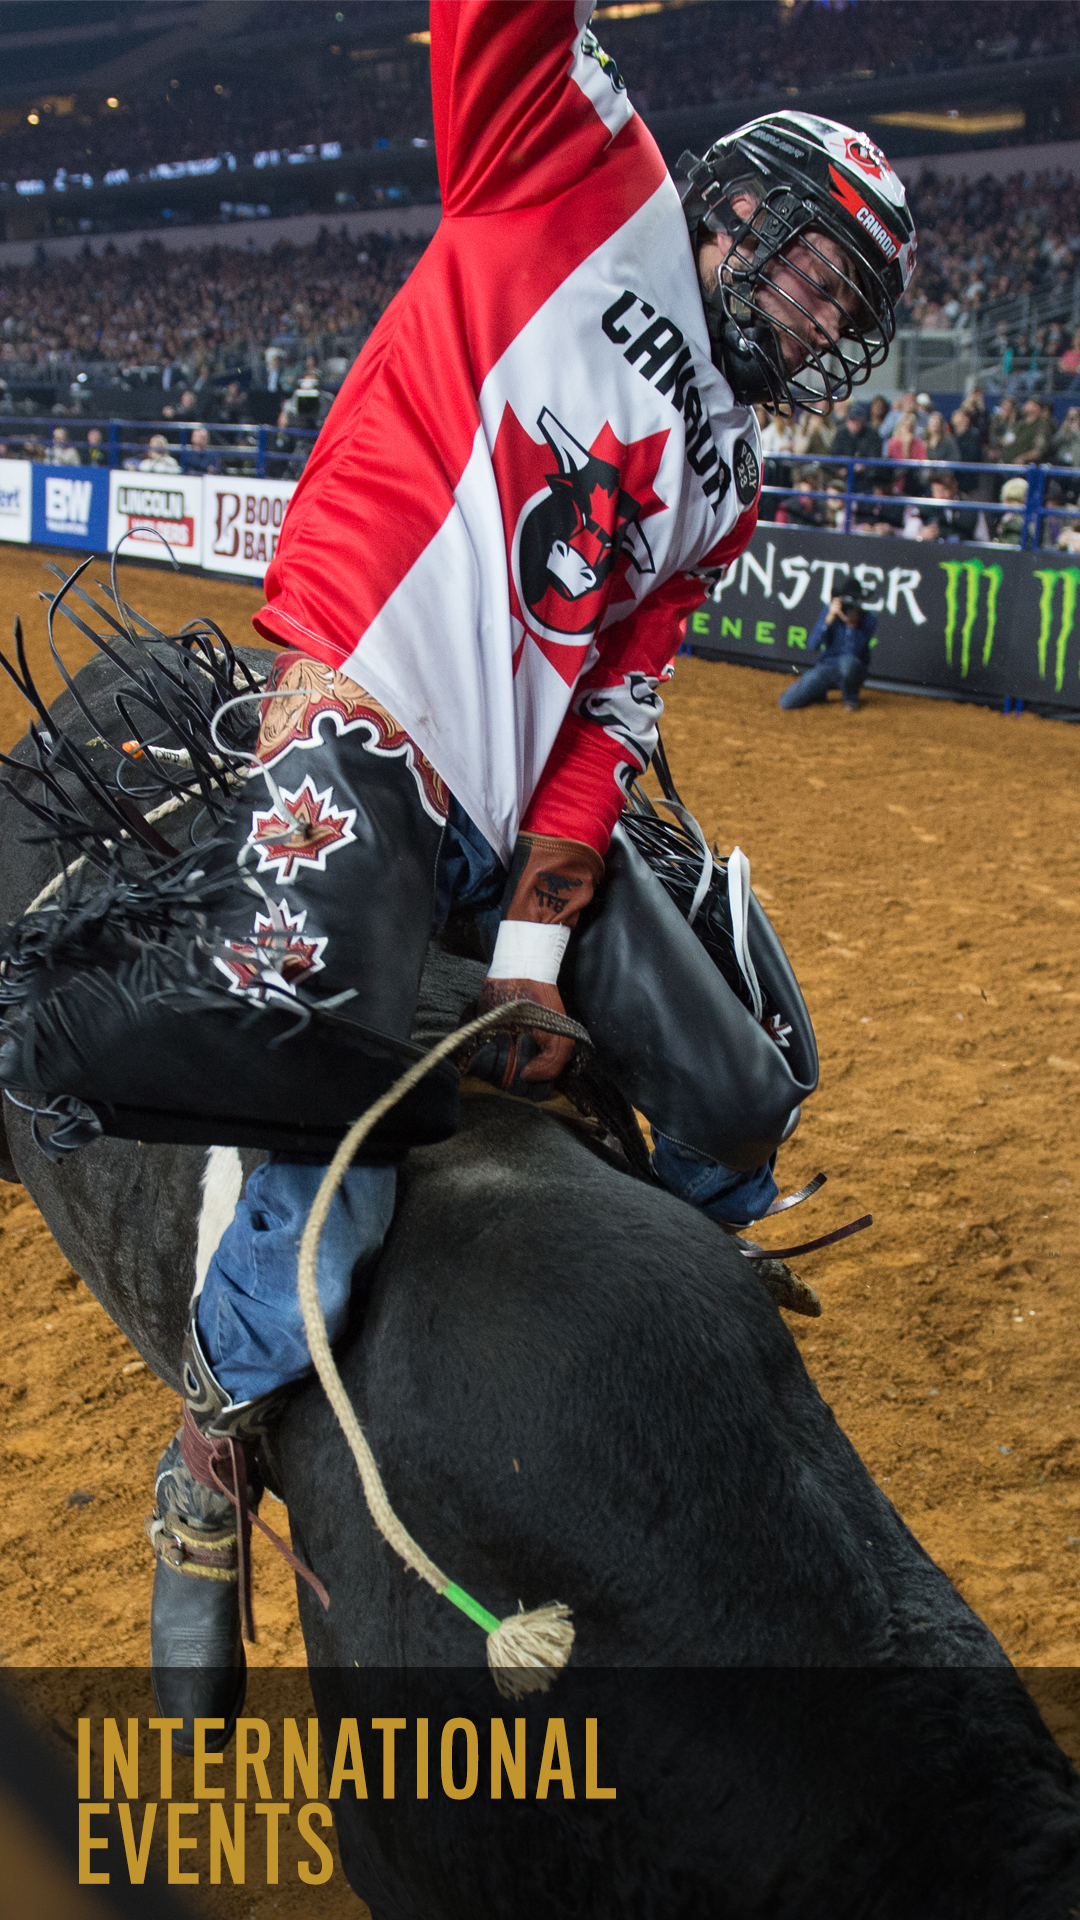 Exclusive streaming home of PBR Global Cup featuring Team Canada and International Tour events from PBR Australia, and PBR Brazil.